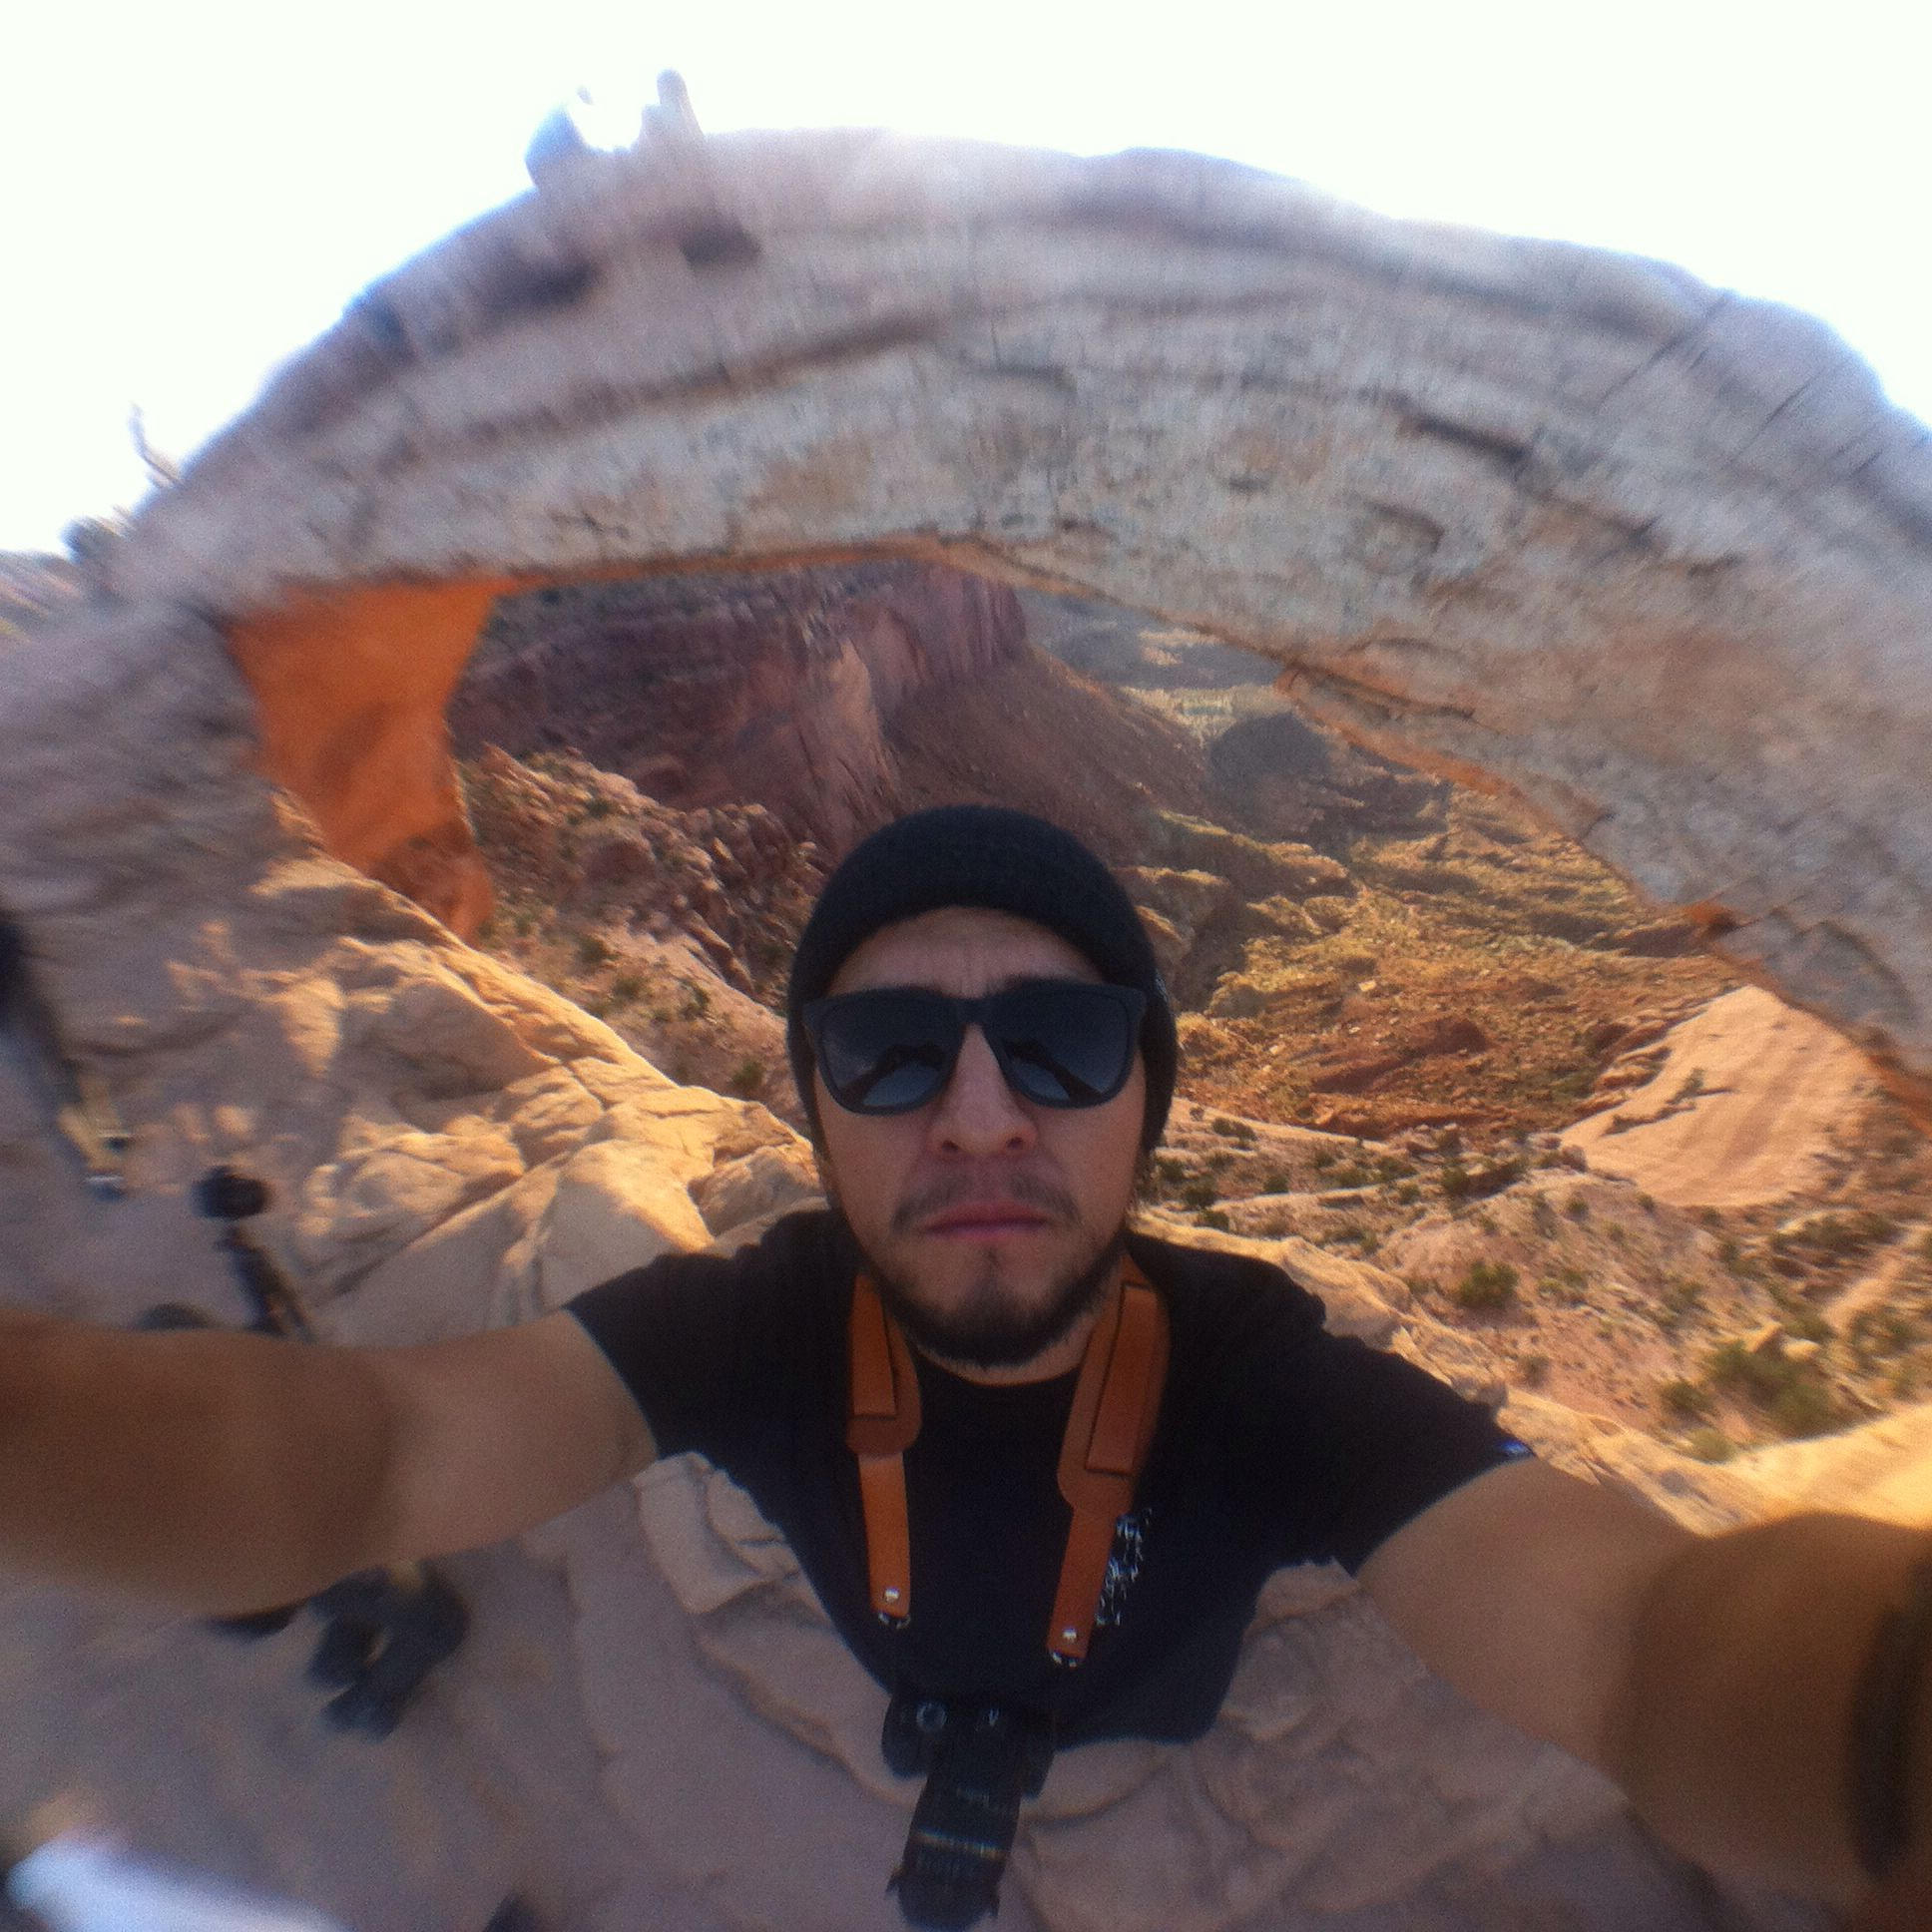 Never Stop Exploring...Go Have An Adventure! #blessed #adventure #moab #neverstopexploring #travel